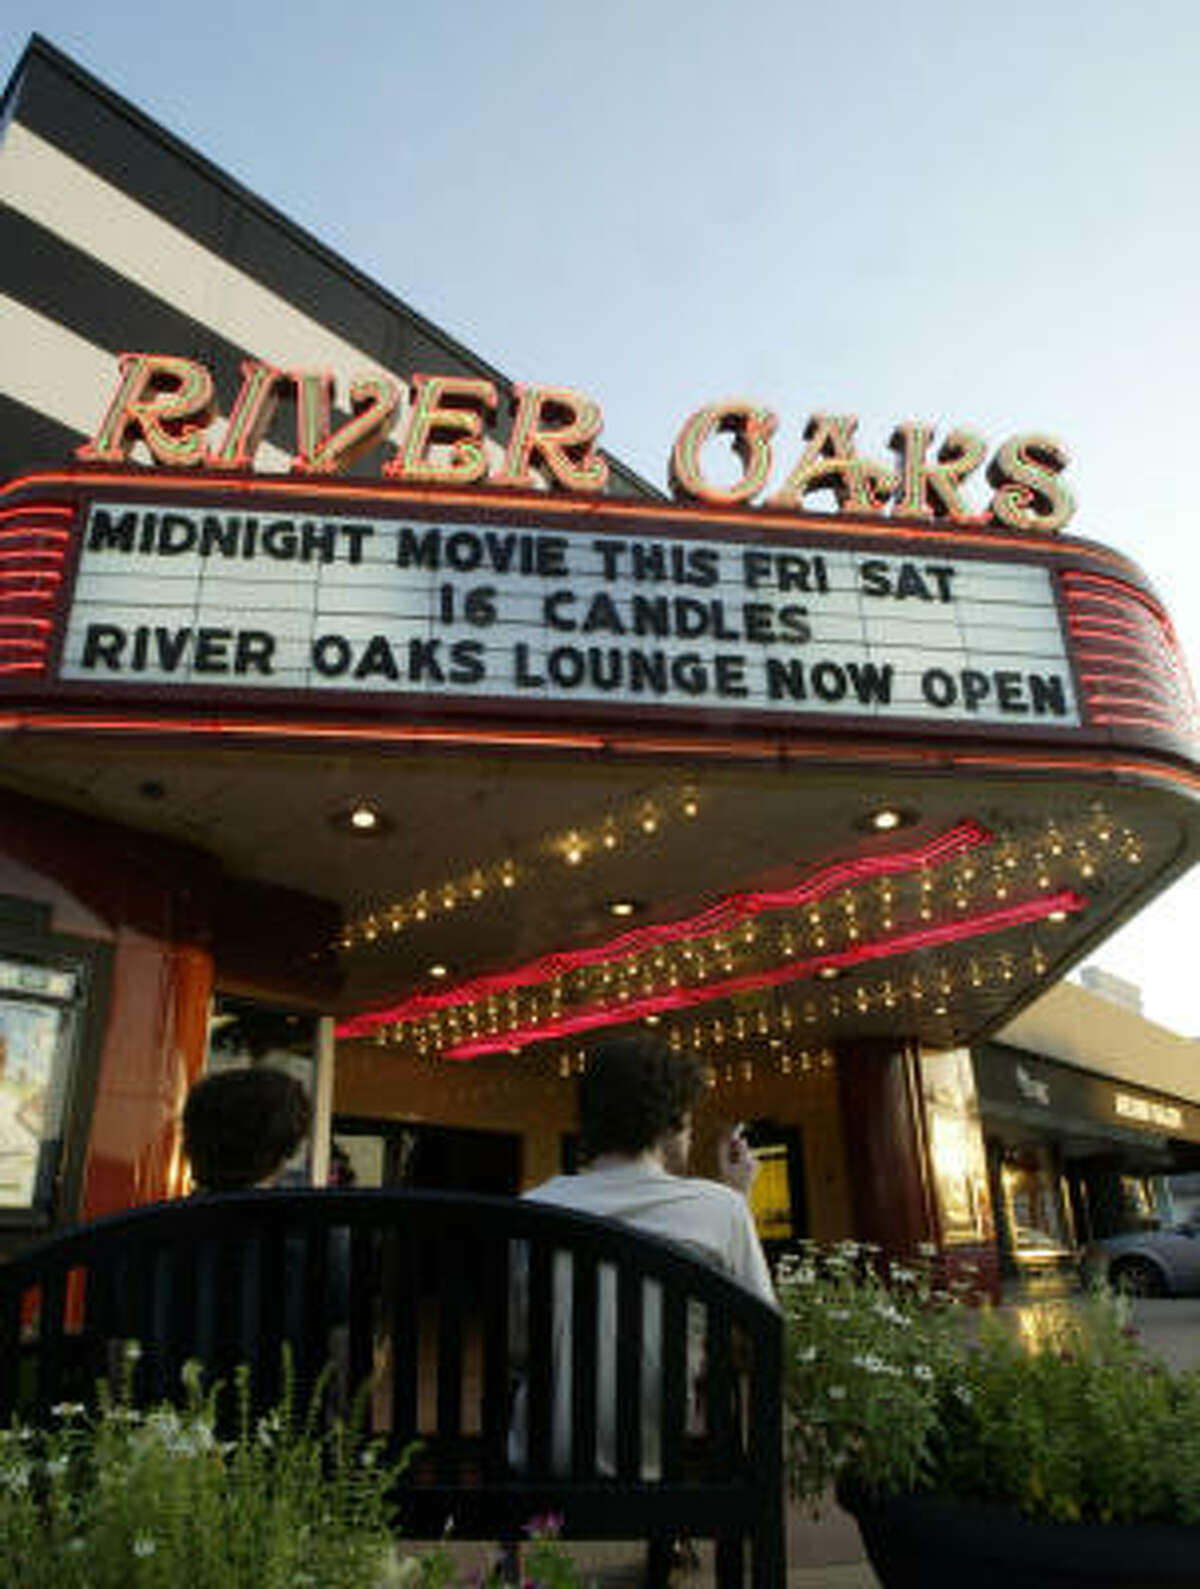 The Greater Houston Preservation Alliance set off the furor last week when it named the River Oaks Shopping Center and the Landmark River Oaks Theatre to its Endangered Buildings List.